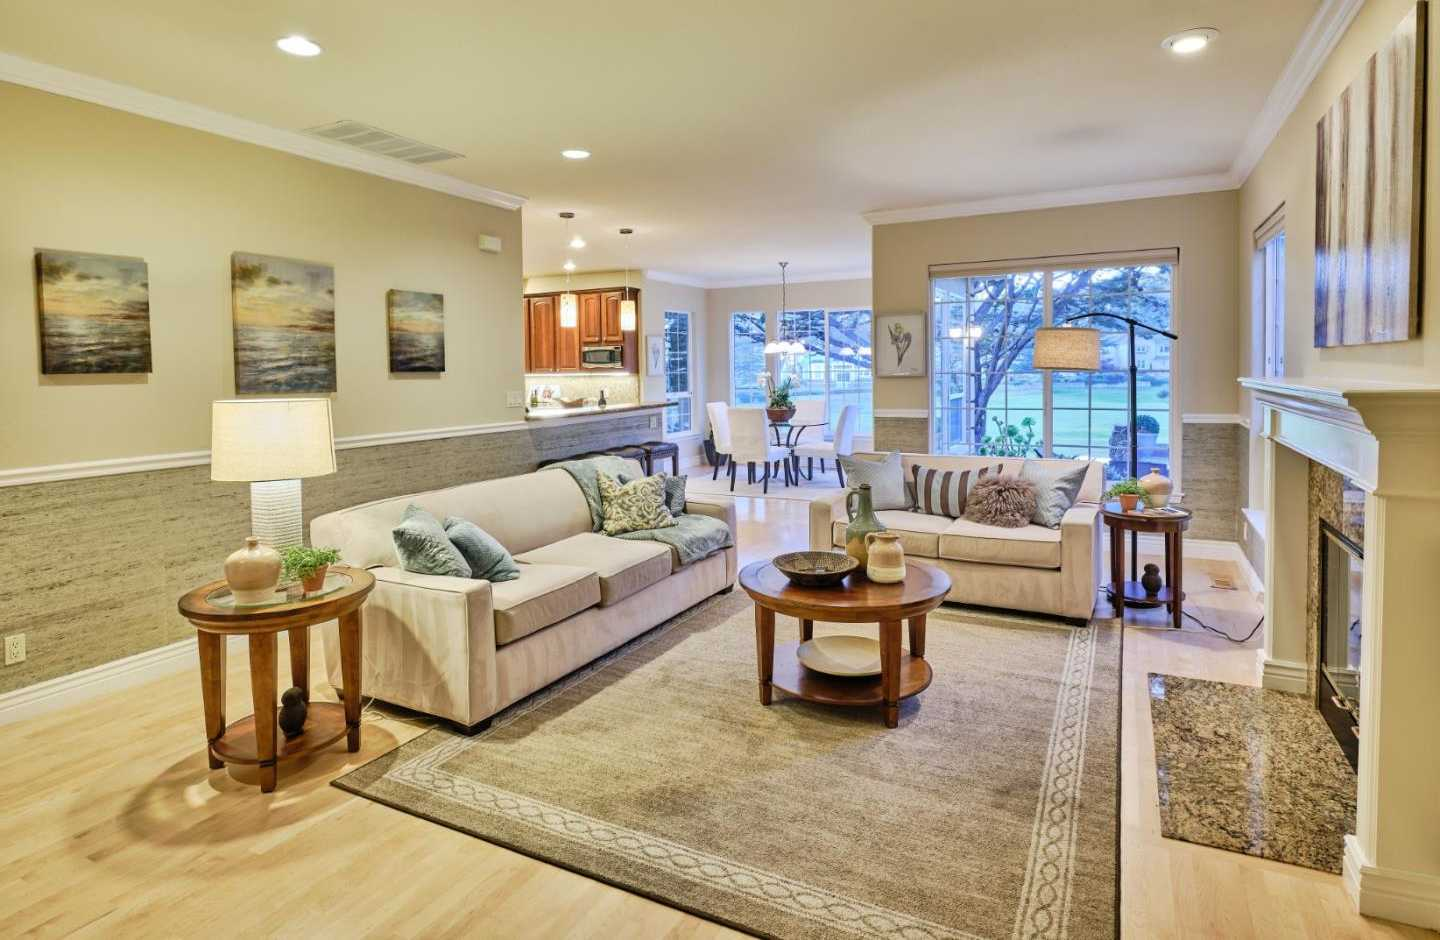 $1,975,000 - 4Br/3Ba -  for Sale in Half Moon Bay